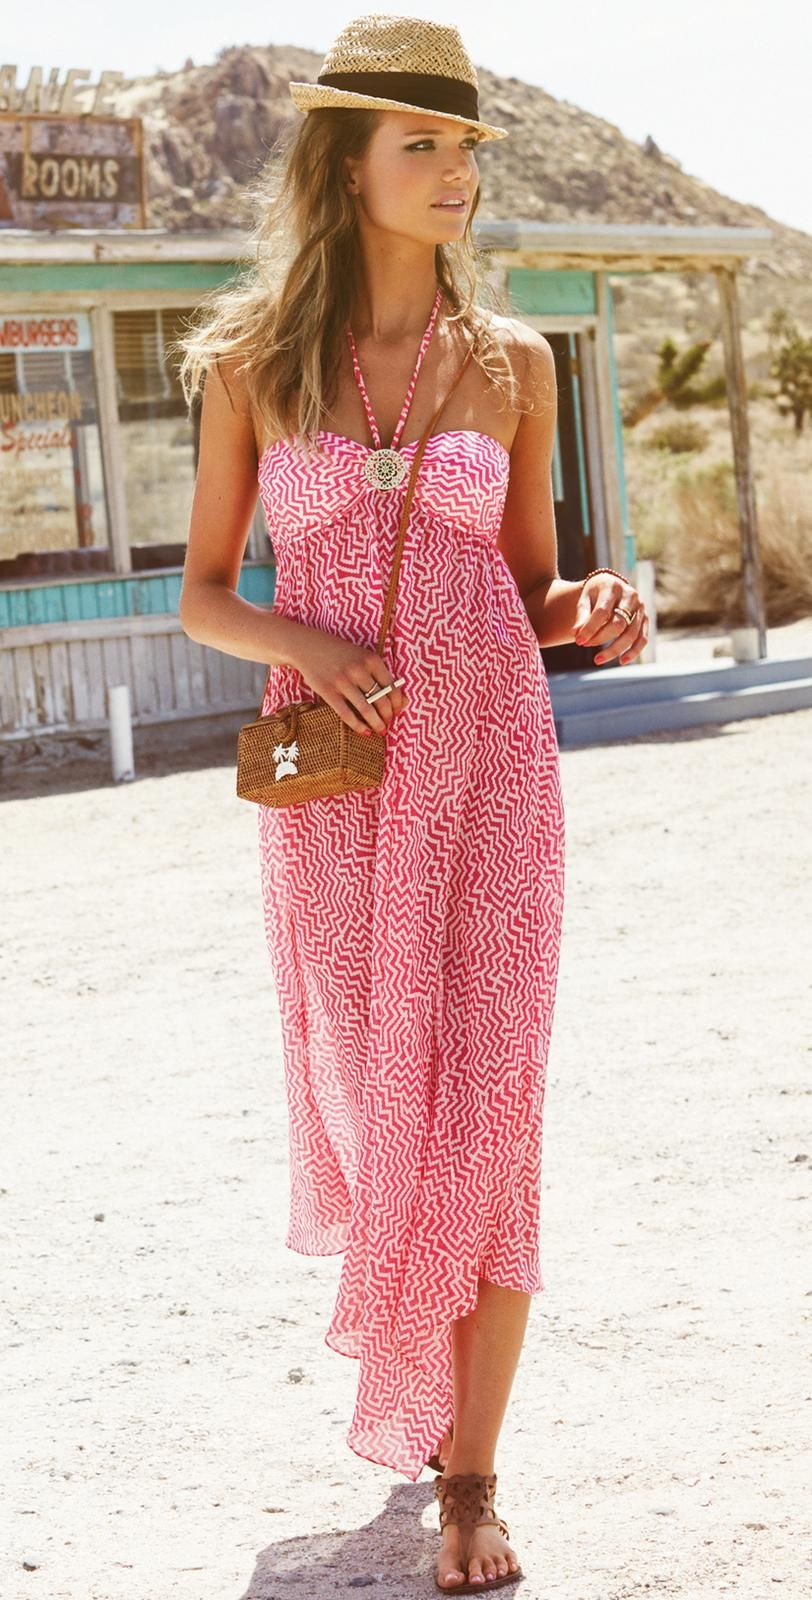 Watercult 7 Malibu Cover Pink Dress 7-7-7  South Beach